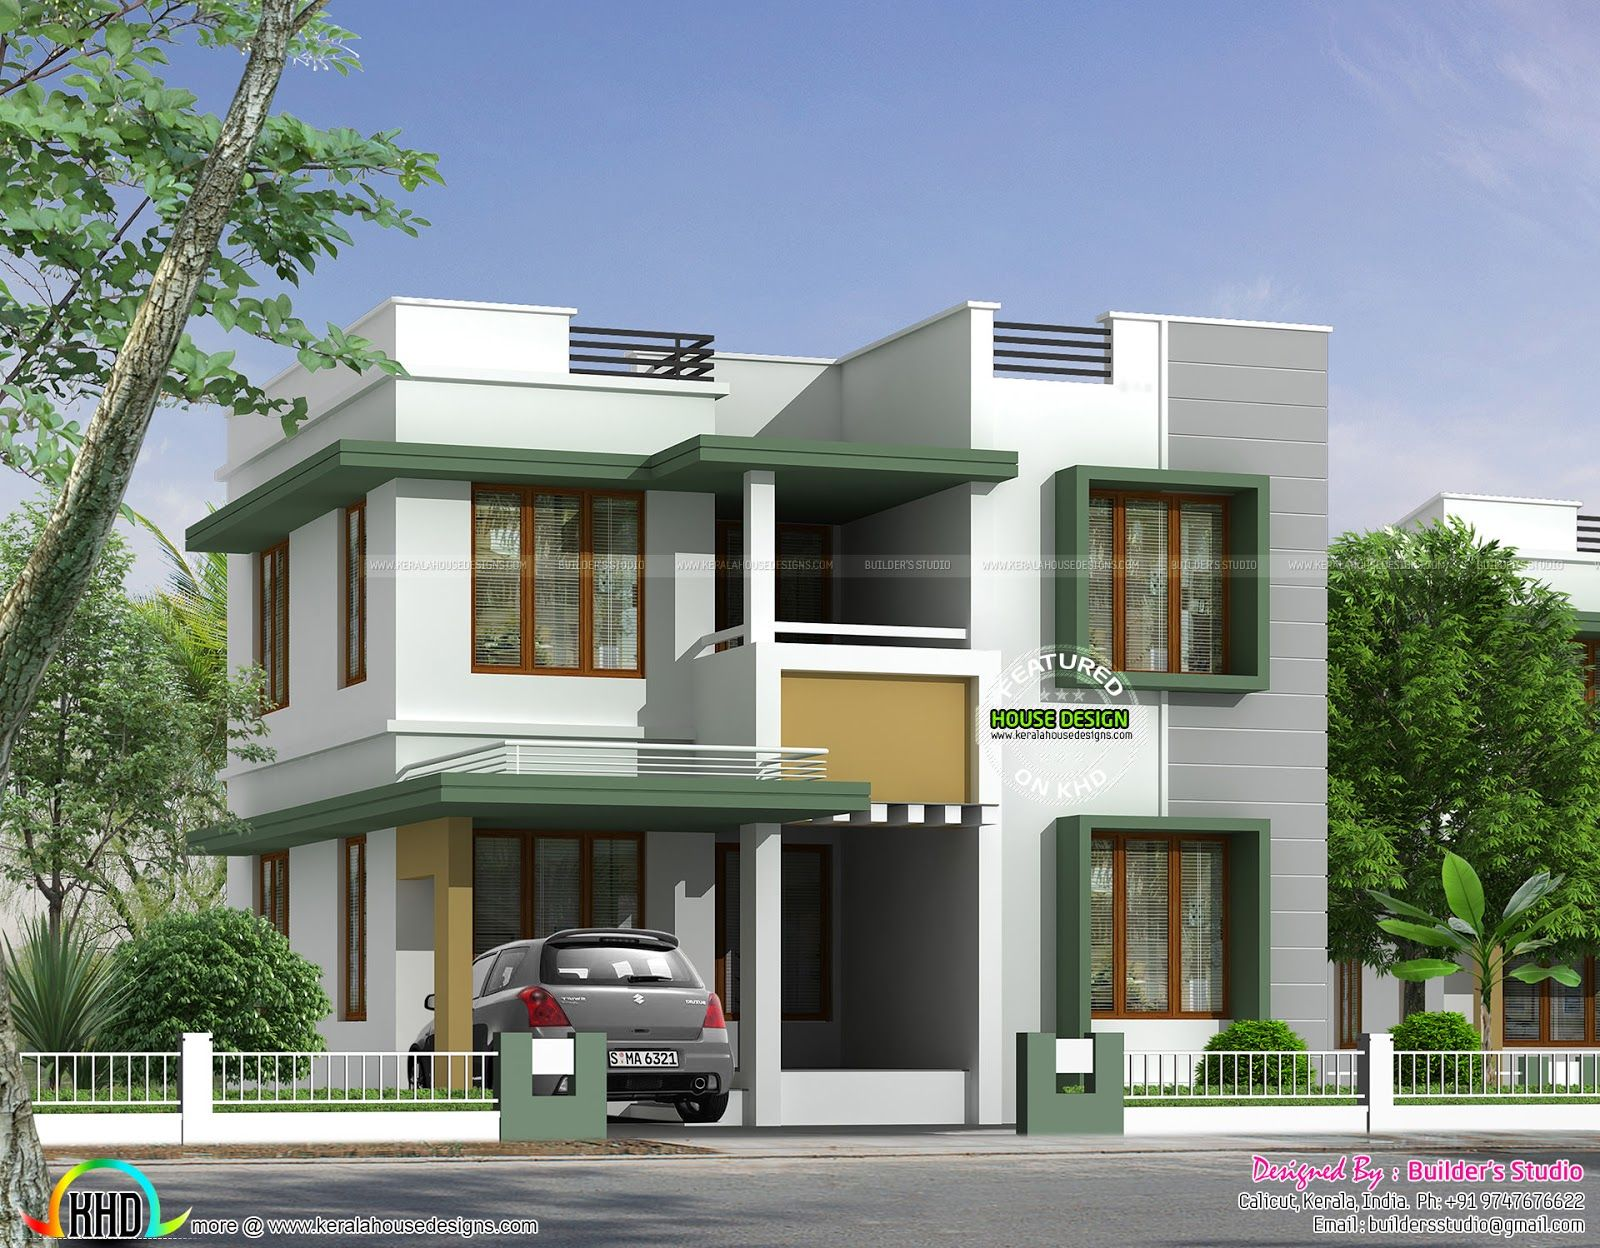 House designs further 1400 sq ft house plans on 1400 square foot